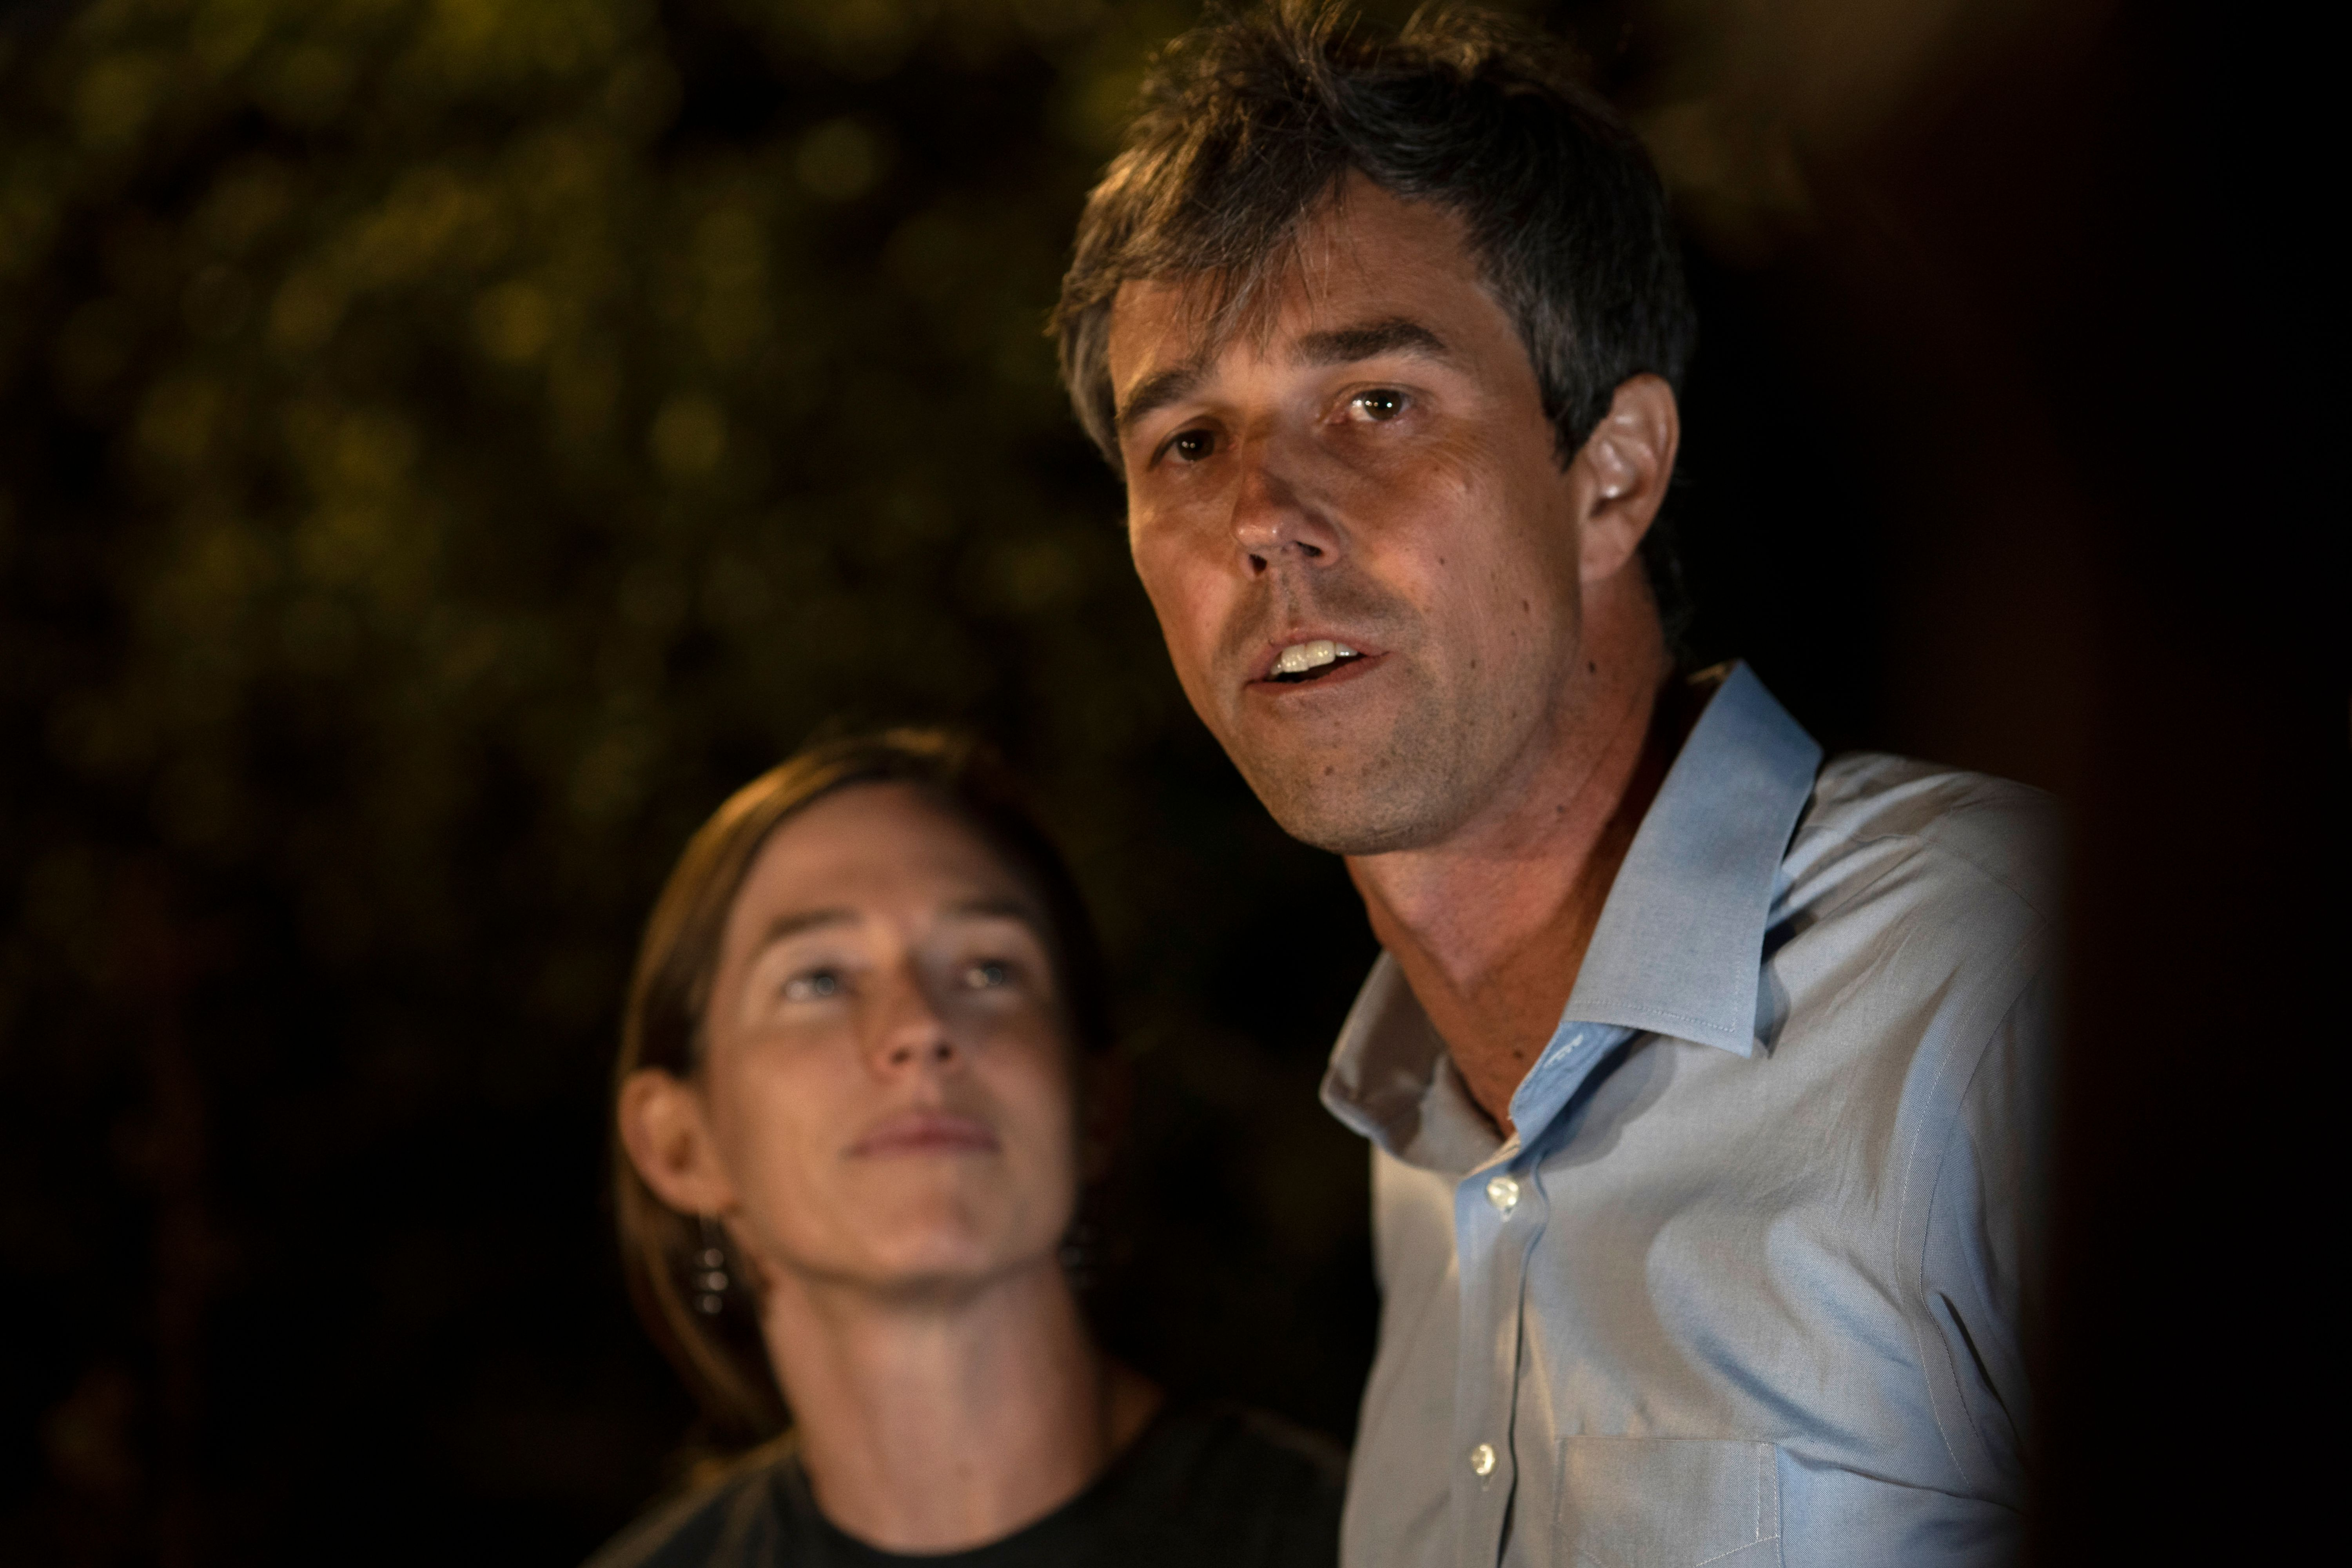 Democratic Party Candidate Beto O'Rourke greets the press with his wife, Amy Hoover Sanders (L), outside of the University of Texas in El Paso, Texas on November 5, 2018. (PAUL RATJE/AFP/Getty Images)